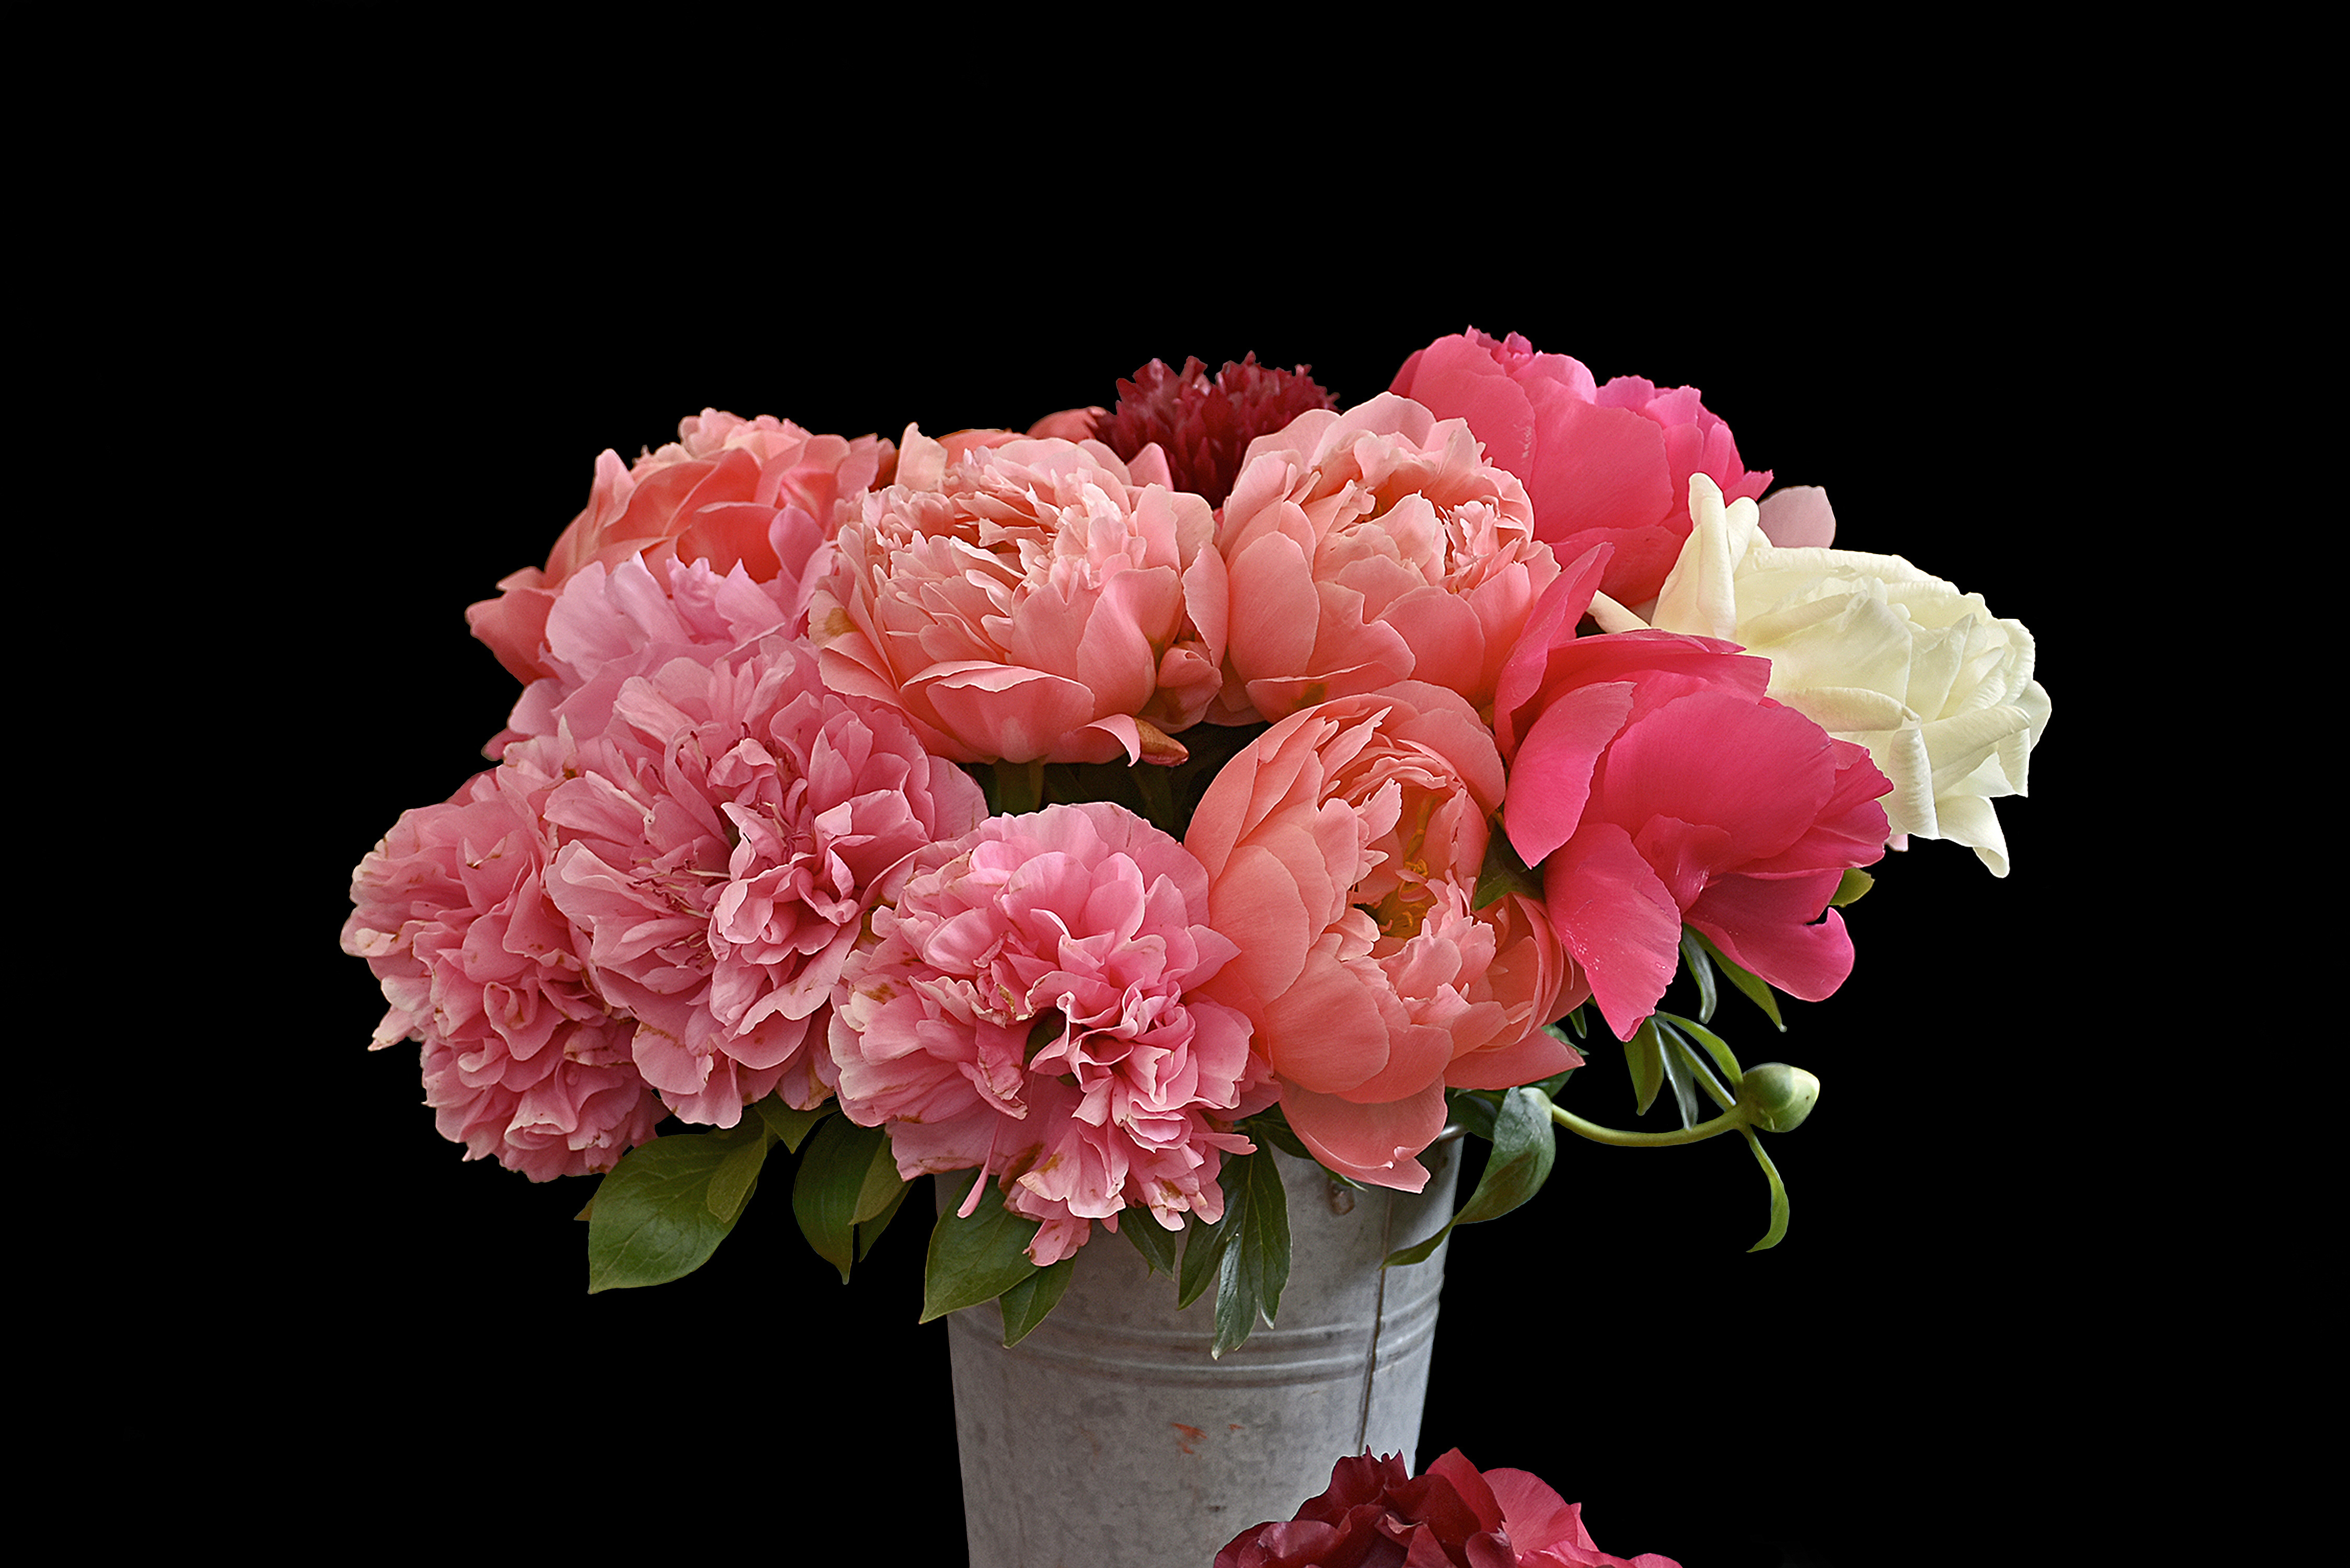 4K Bouquet Of Peonies Wallpapers High Quality   Download Free